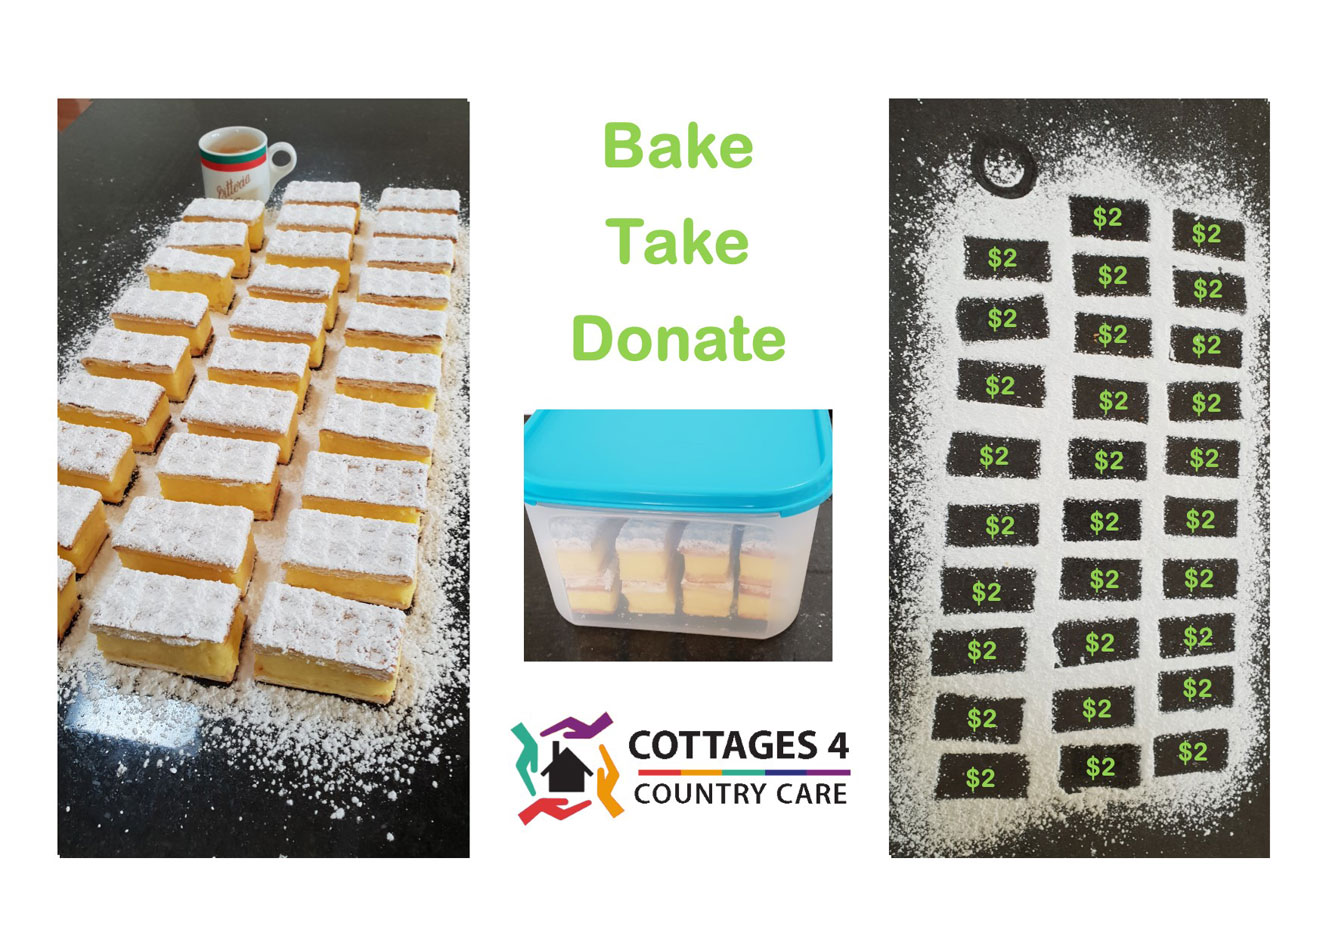 Bake Take Donate image